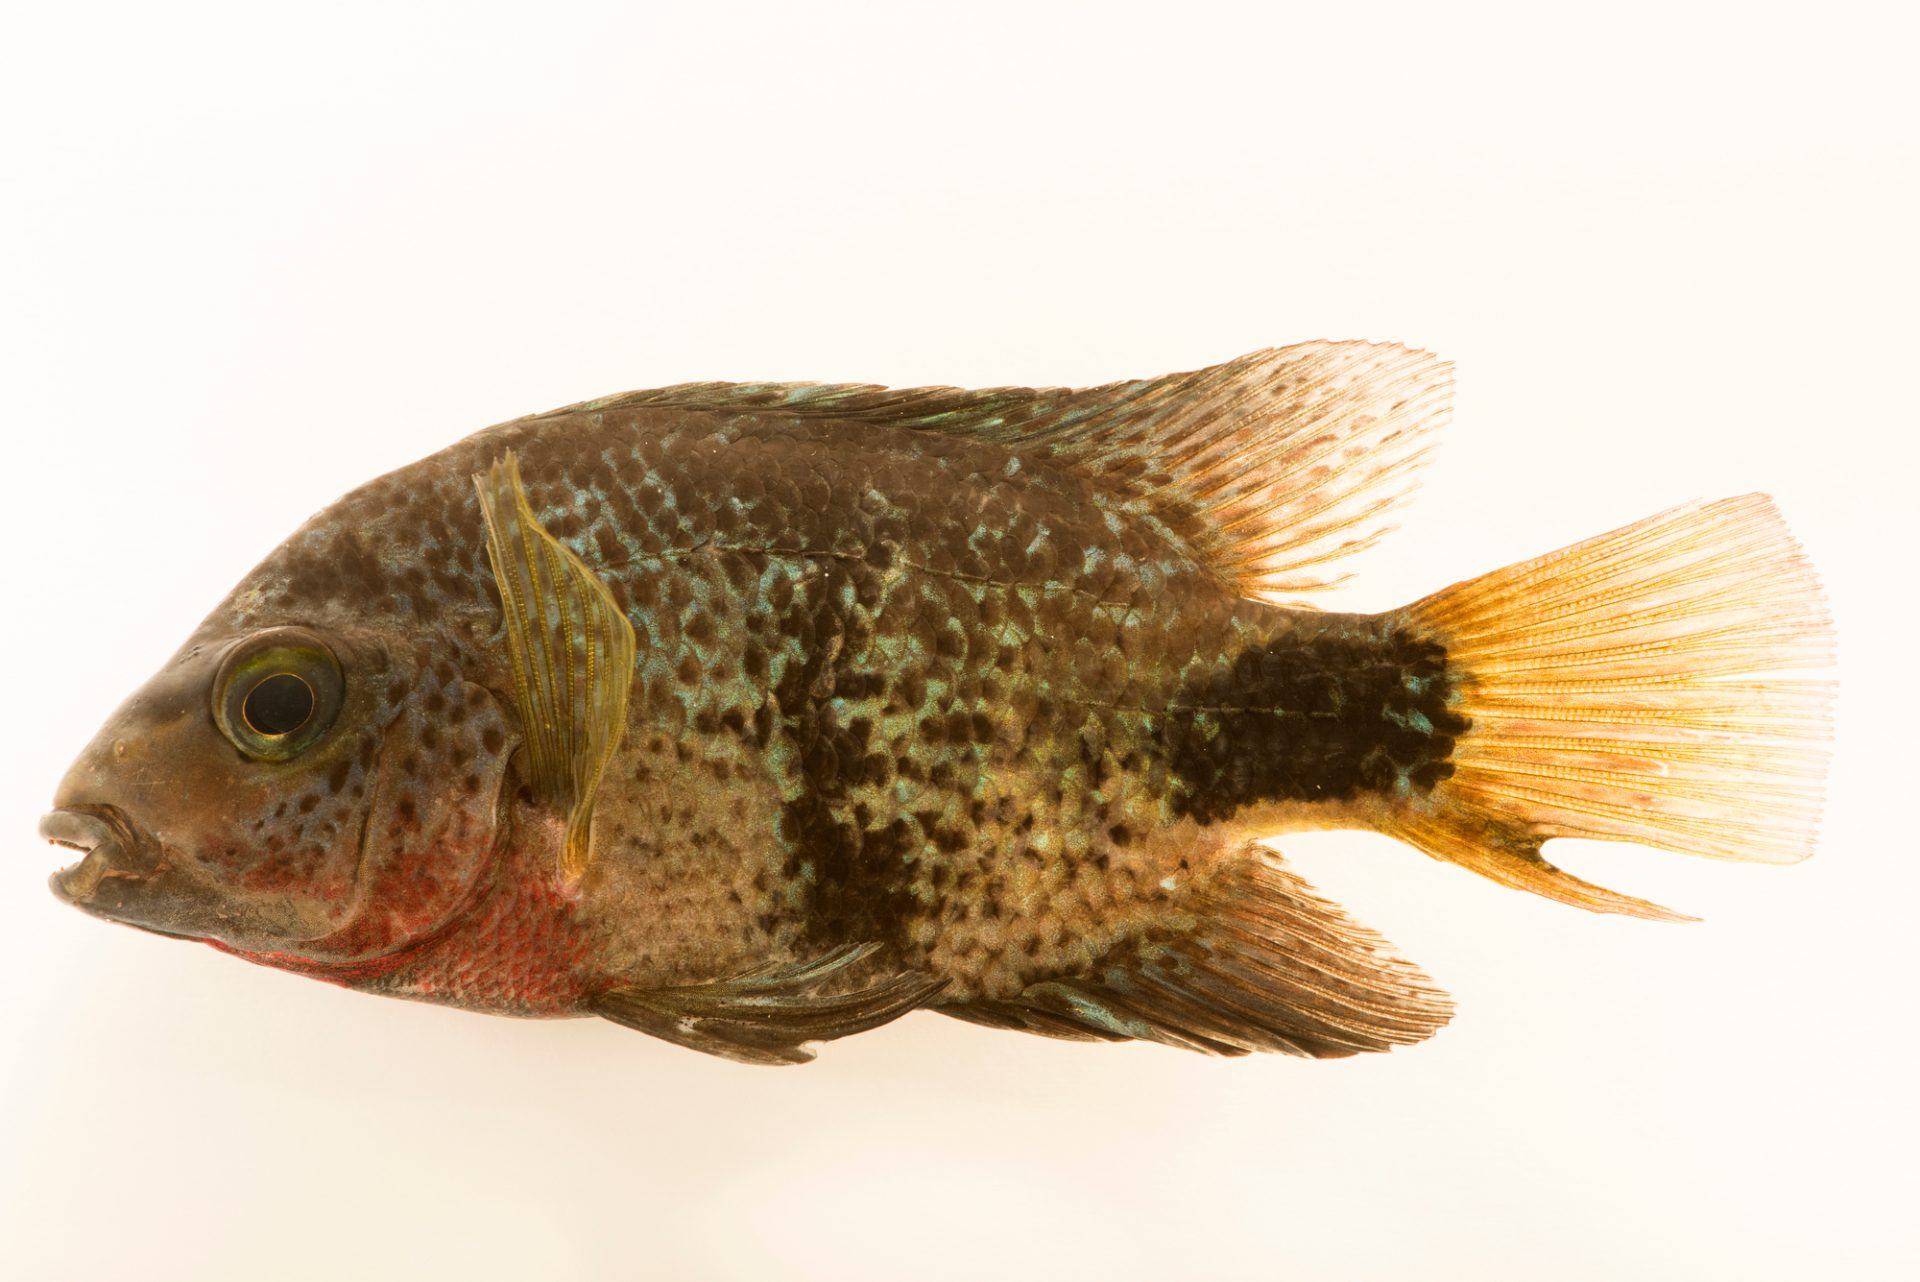 Photo: Blackbelt cichlid (Paraneetroplus maculicauda) at the Dallas Children's Aquarium.